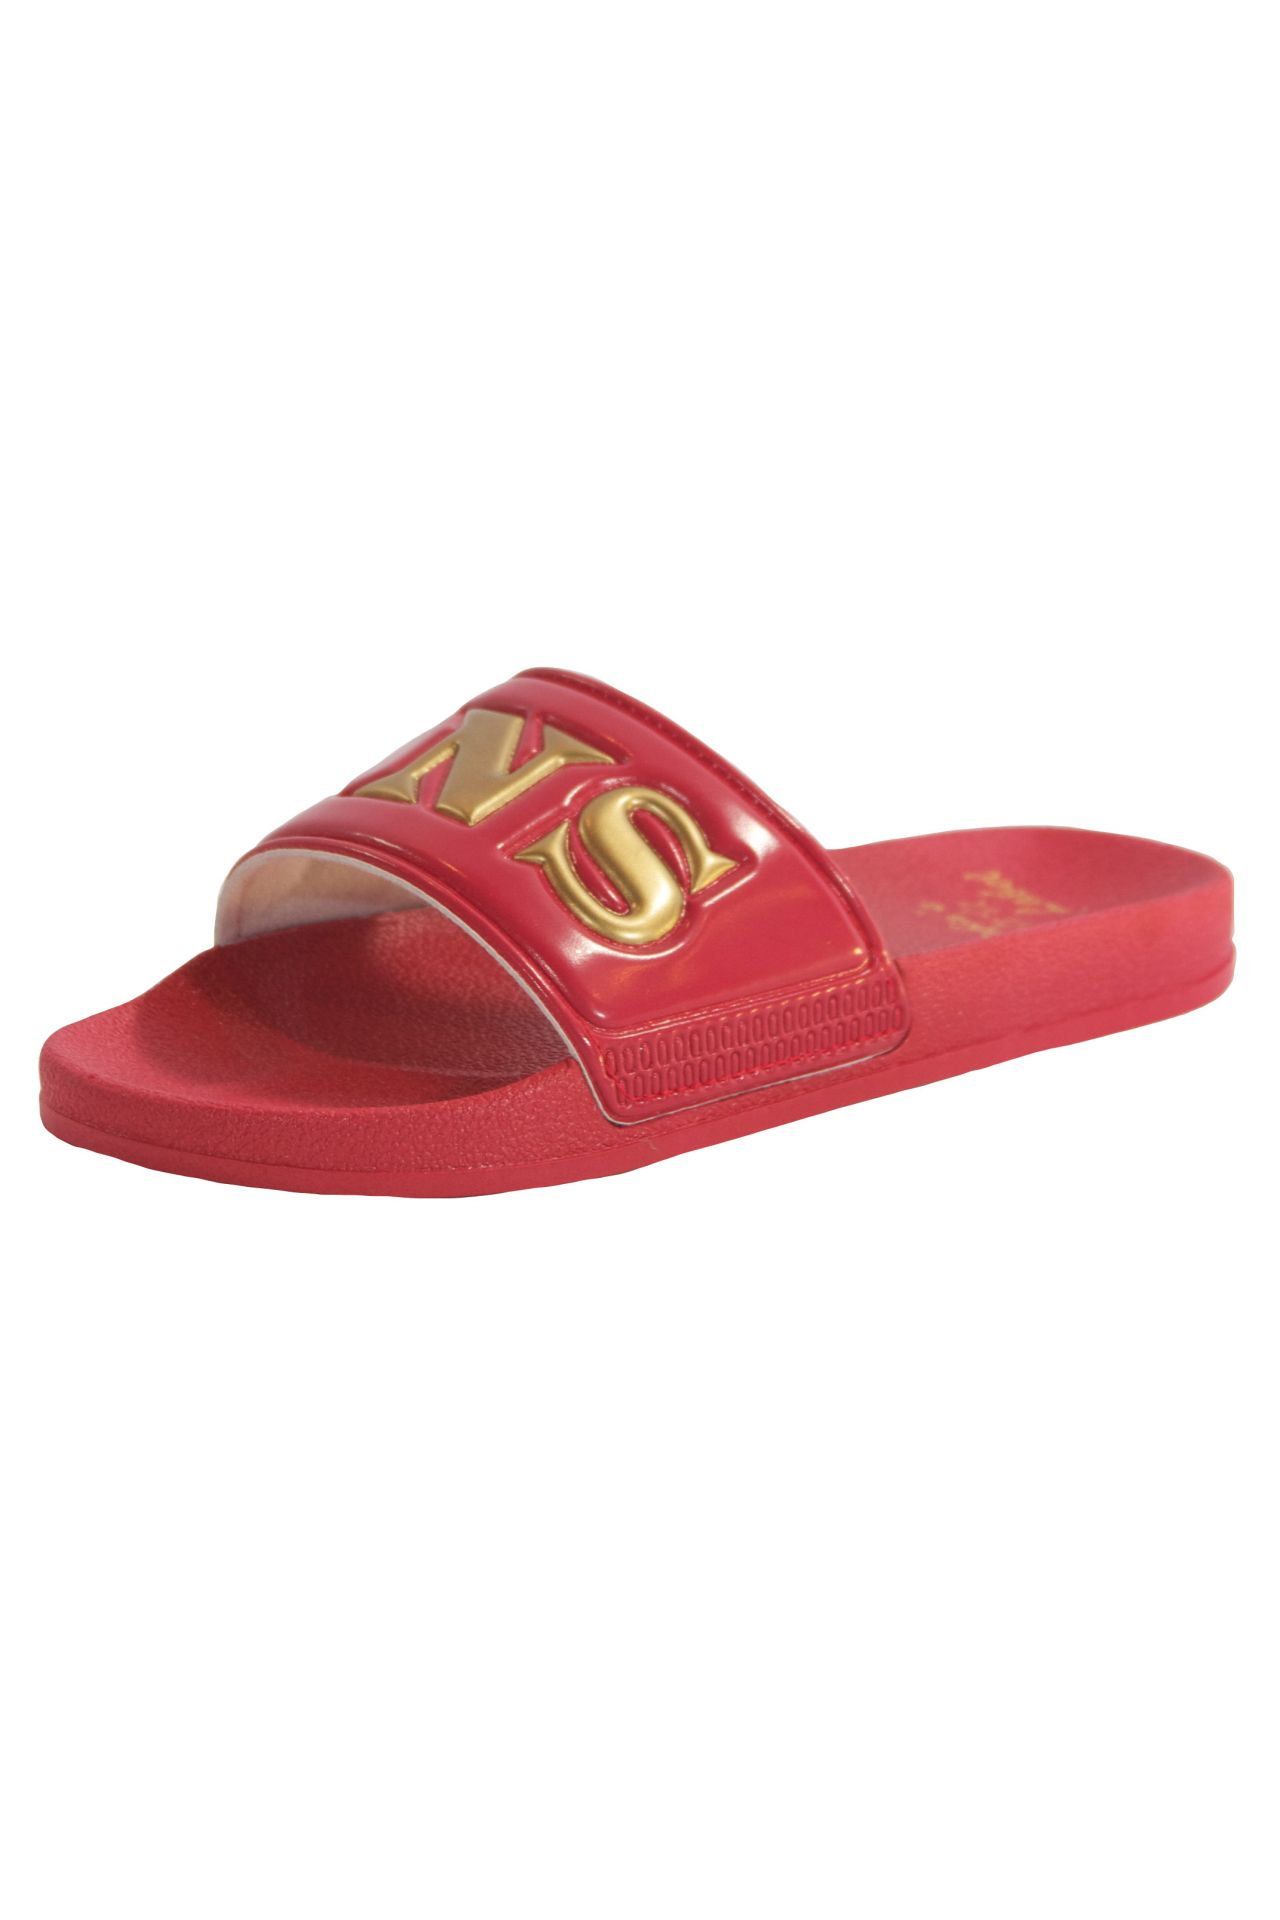 ROBIN SLIDES IN RED AND GOLD